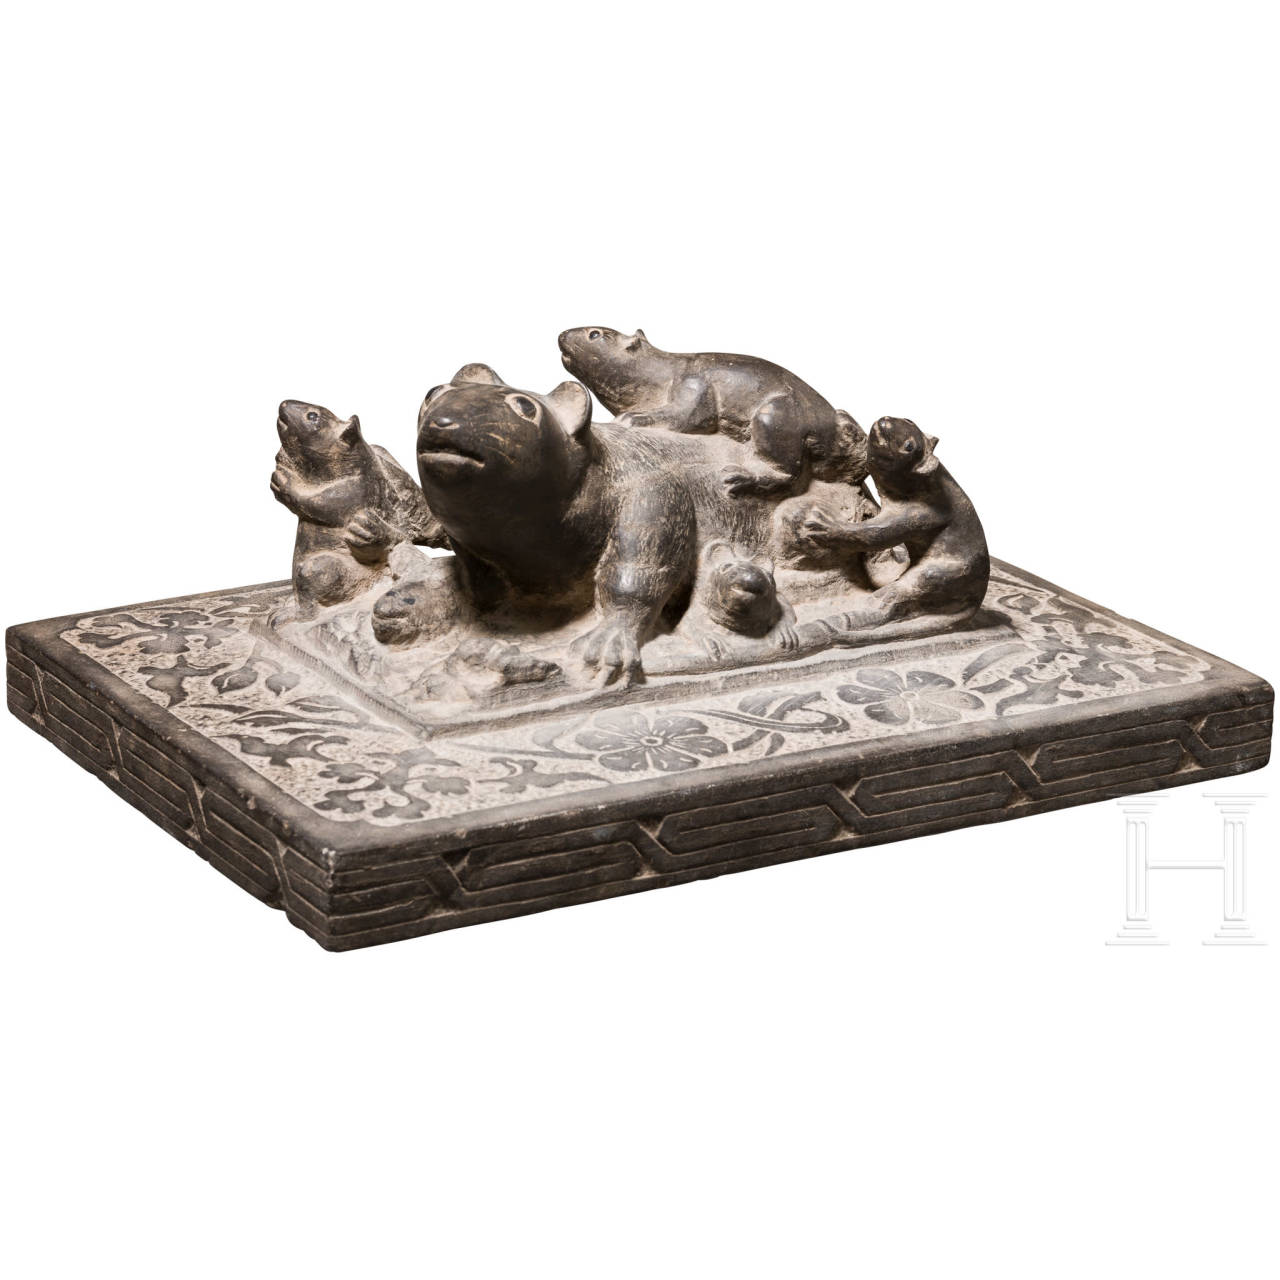 An unusual slate sculpture of a rat family, probably Rajasthan/India, ca. 1900